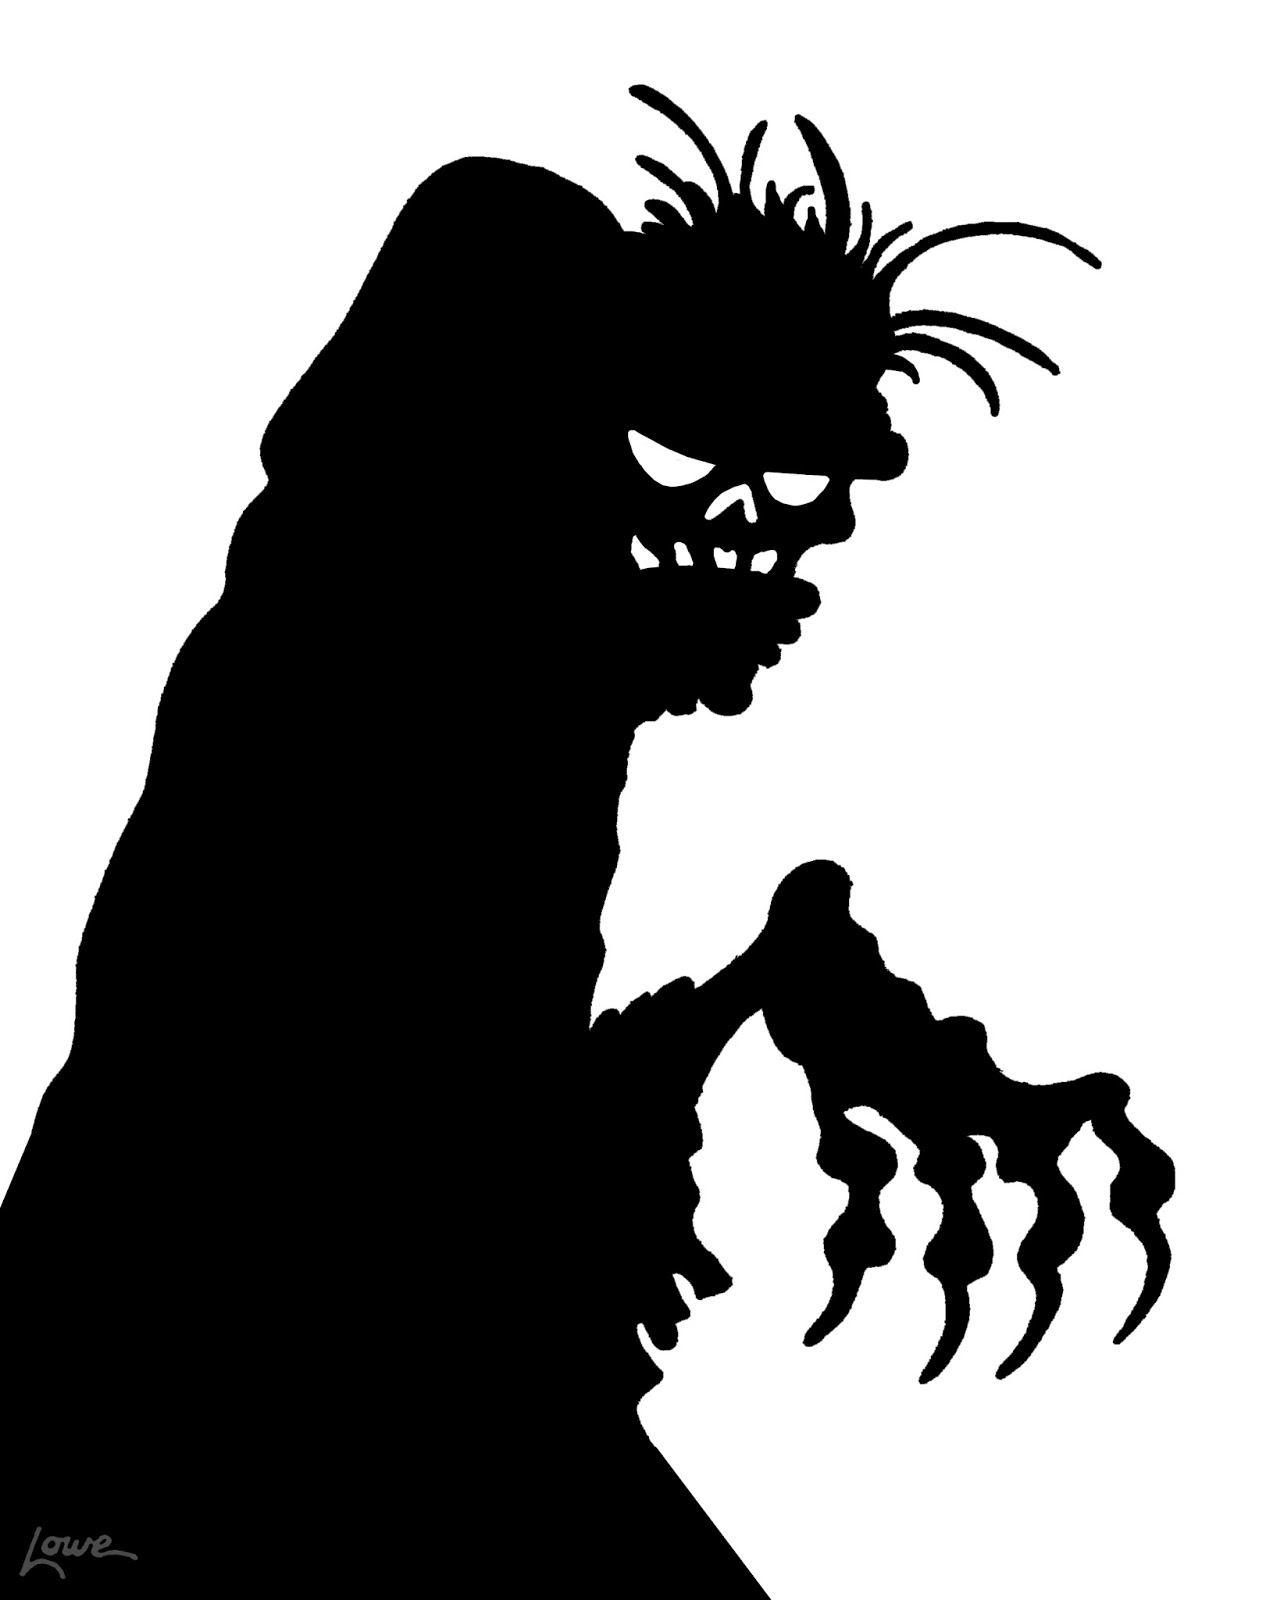 Dave Lowe Design The Blog 63 Days Til Halloween Zombie Window Silhouette Printables